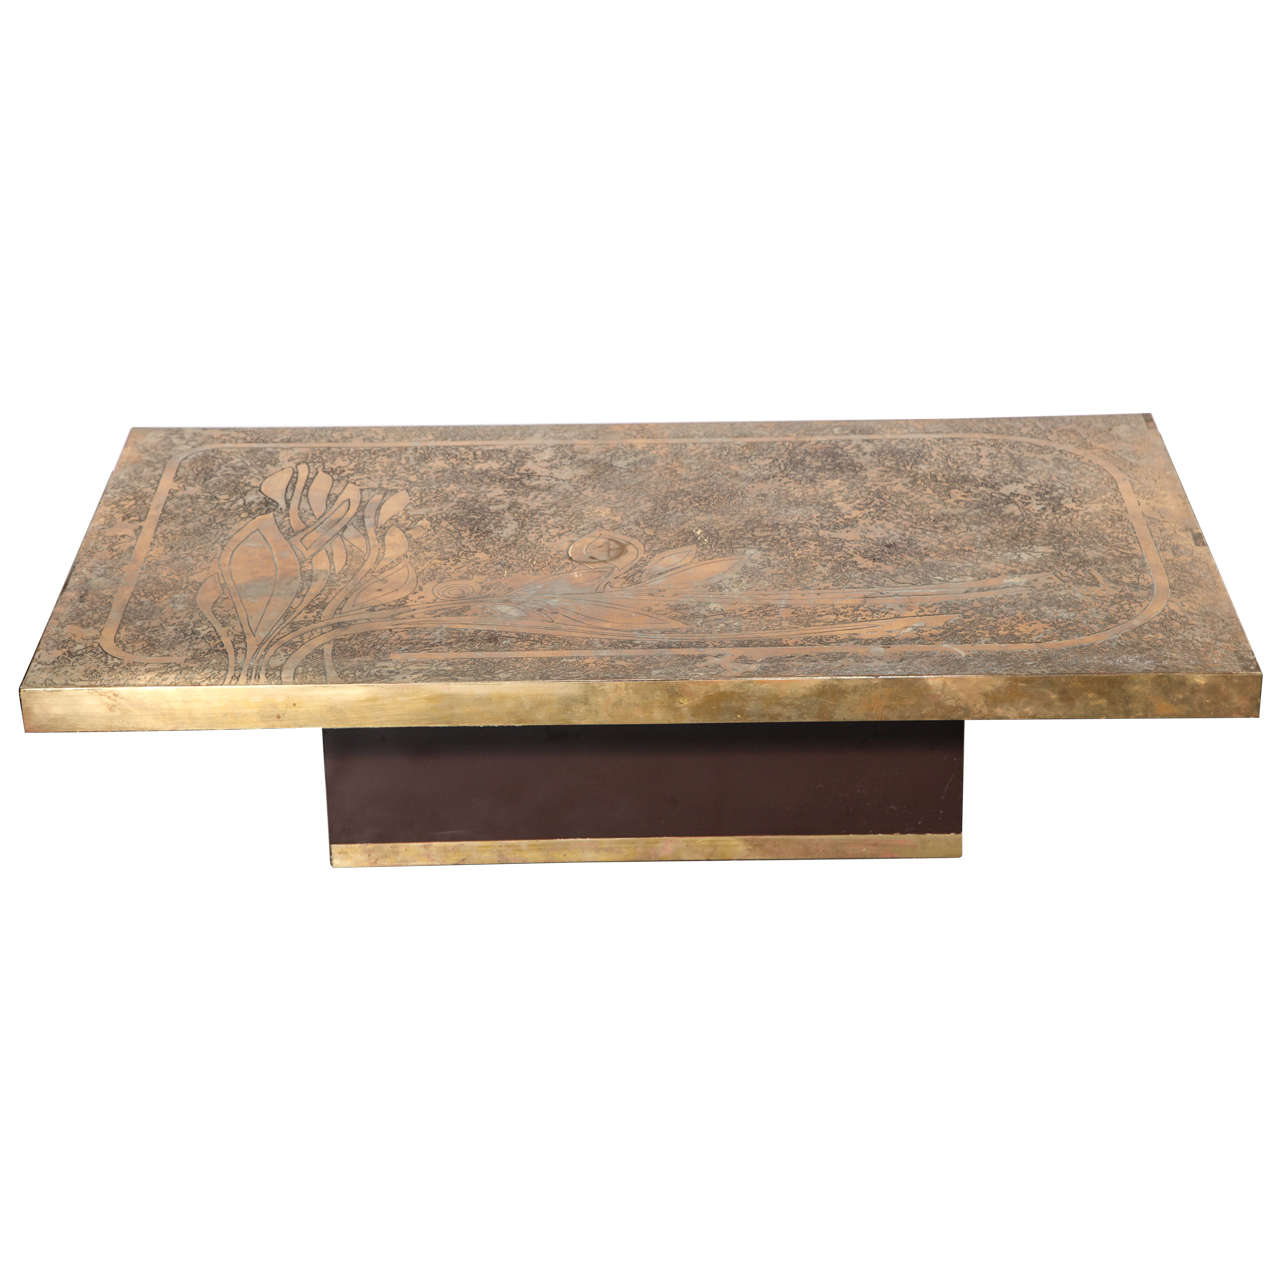 Signed 1960s french etched bronze coffee table for sale at 1stdibs Bronze coffee tables